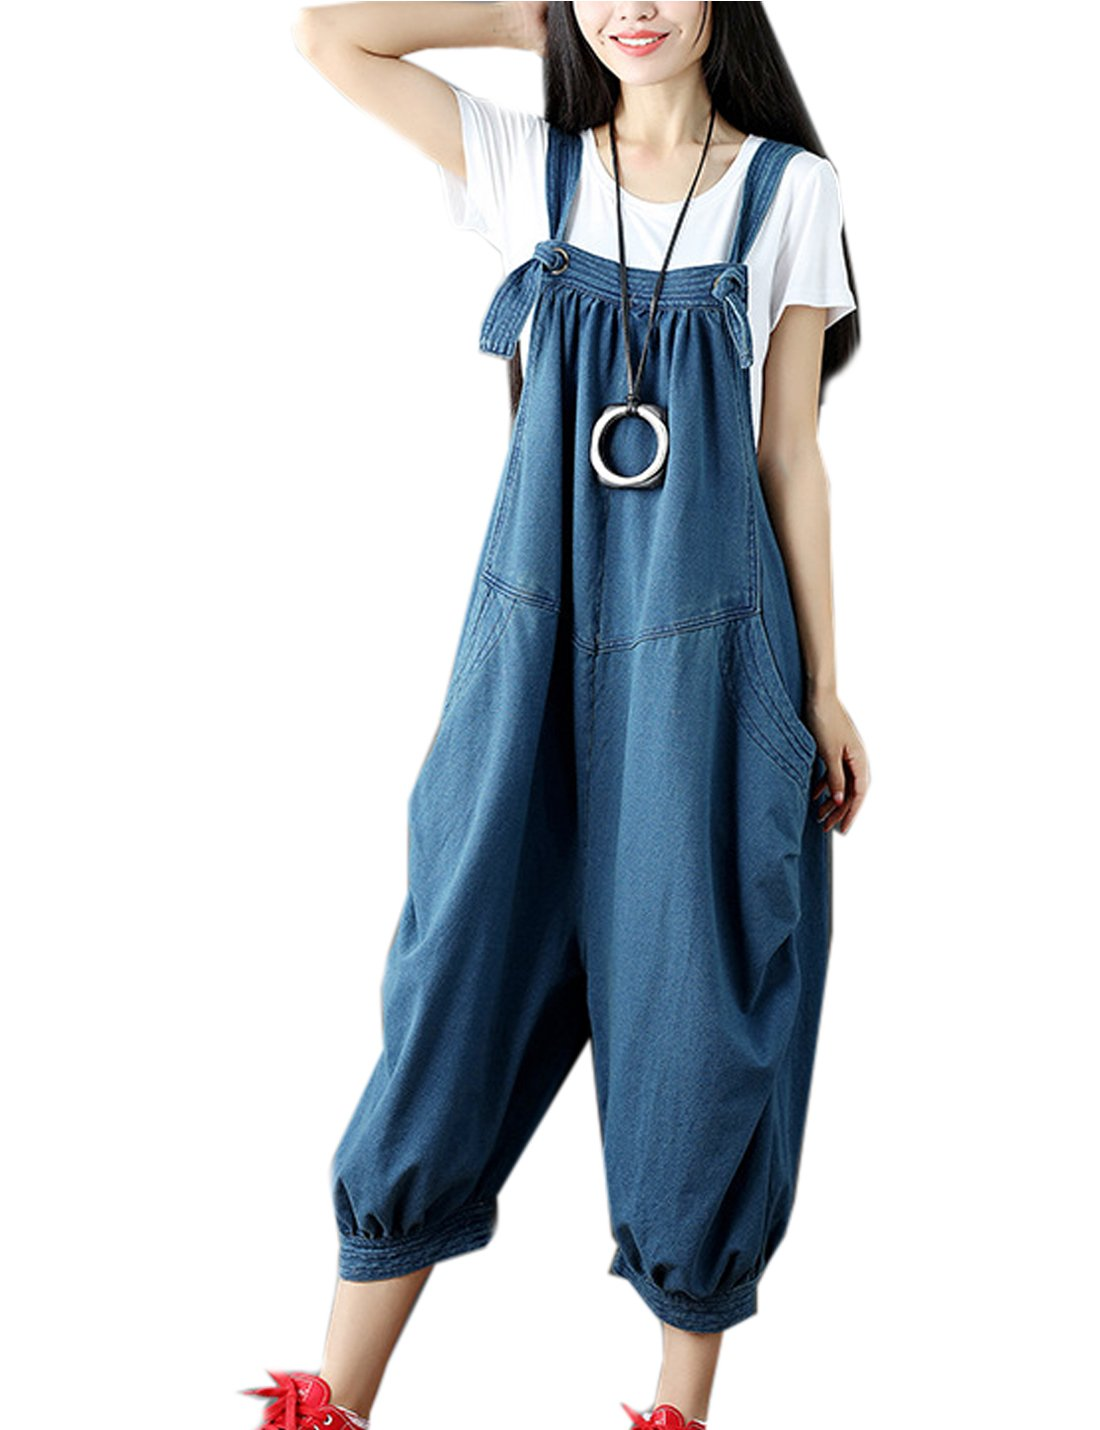 Classic Ripped Light Blue Denim Overalls For Women Casual Loose Rompers Womens Jumpsuit Plus Size Wide Leg Pockets Baggy Pants Women's Clothing